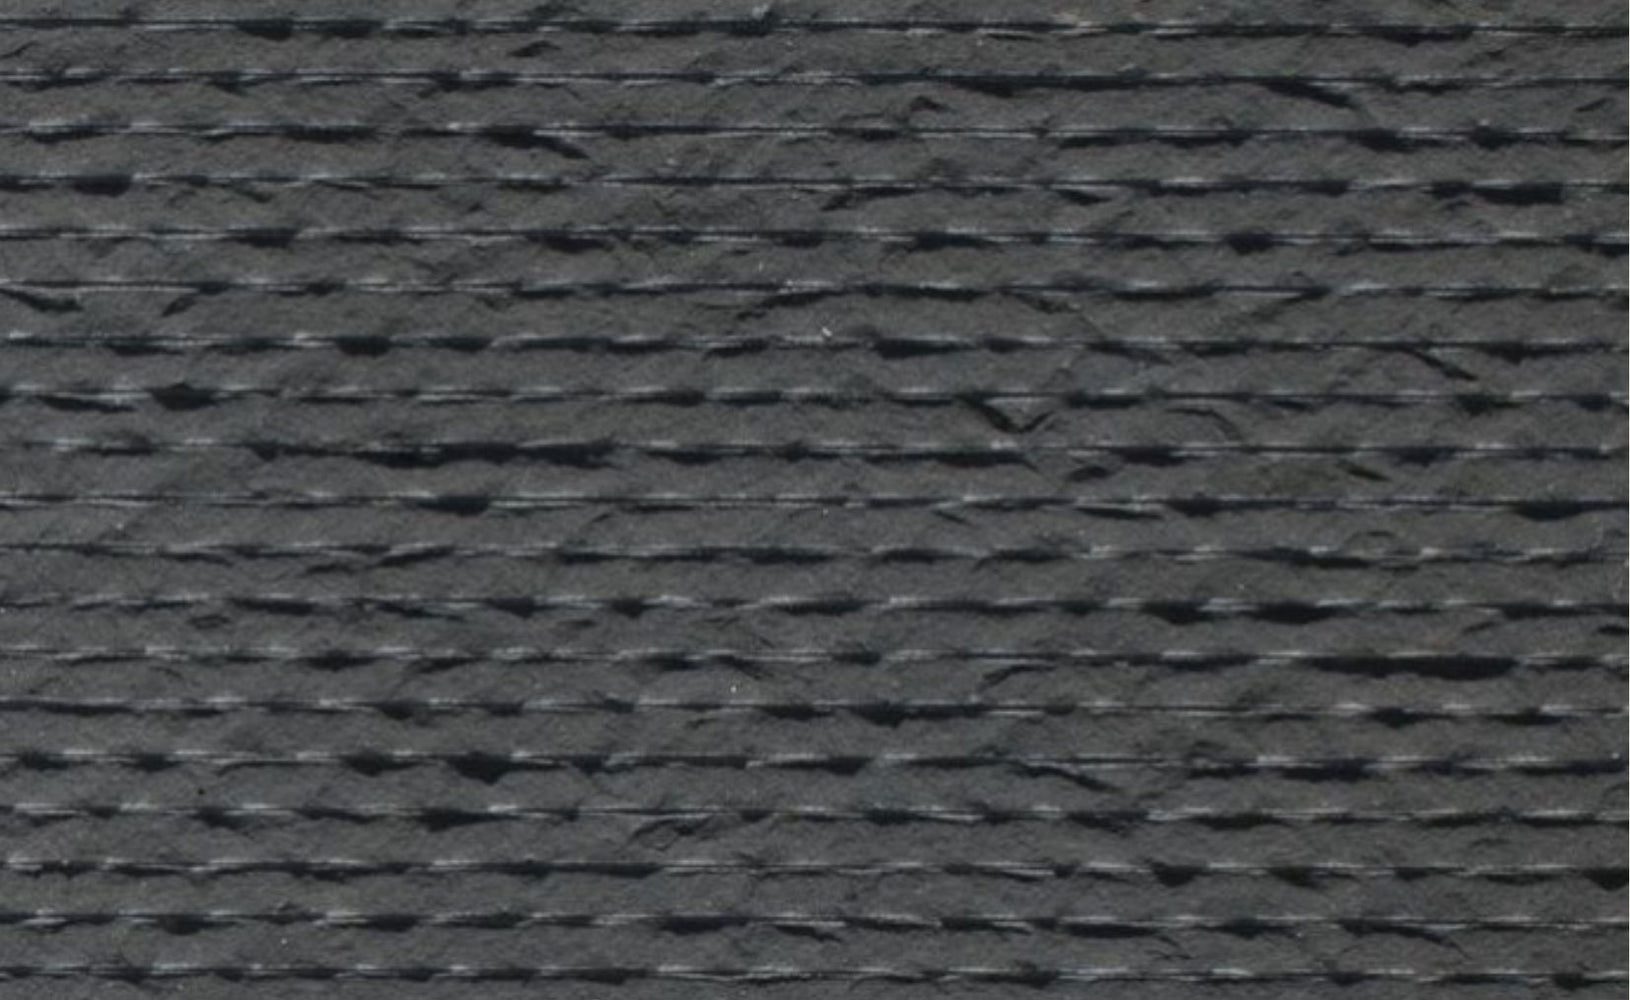 Flamed Wave Black Basalt Tile 12x24